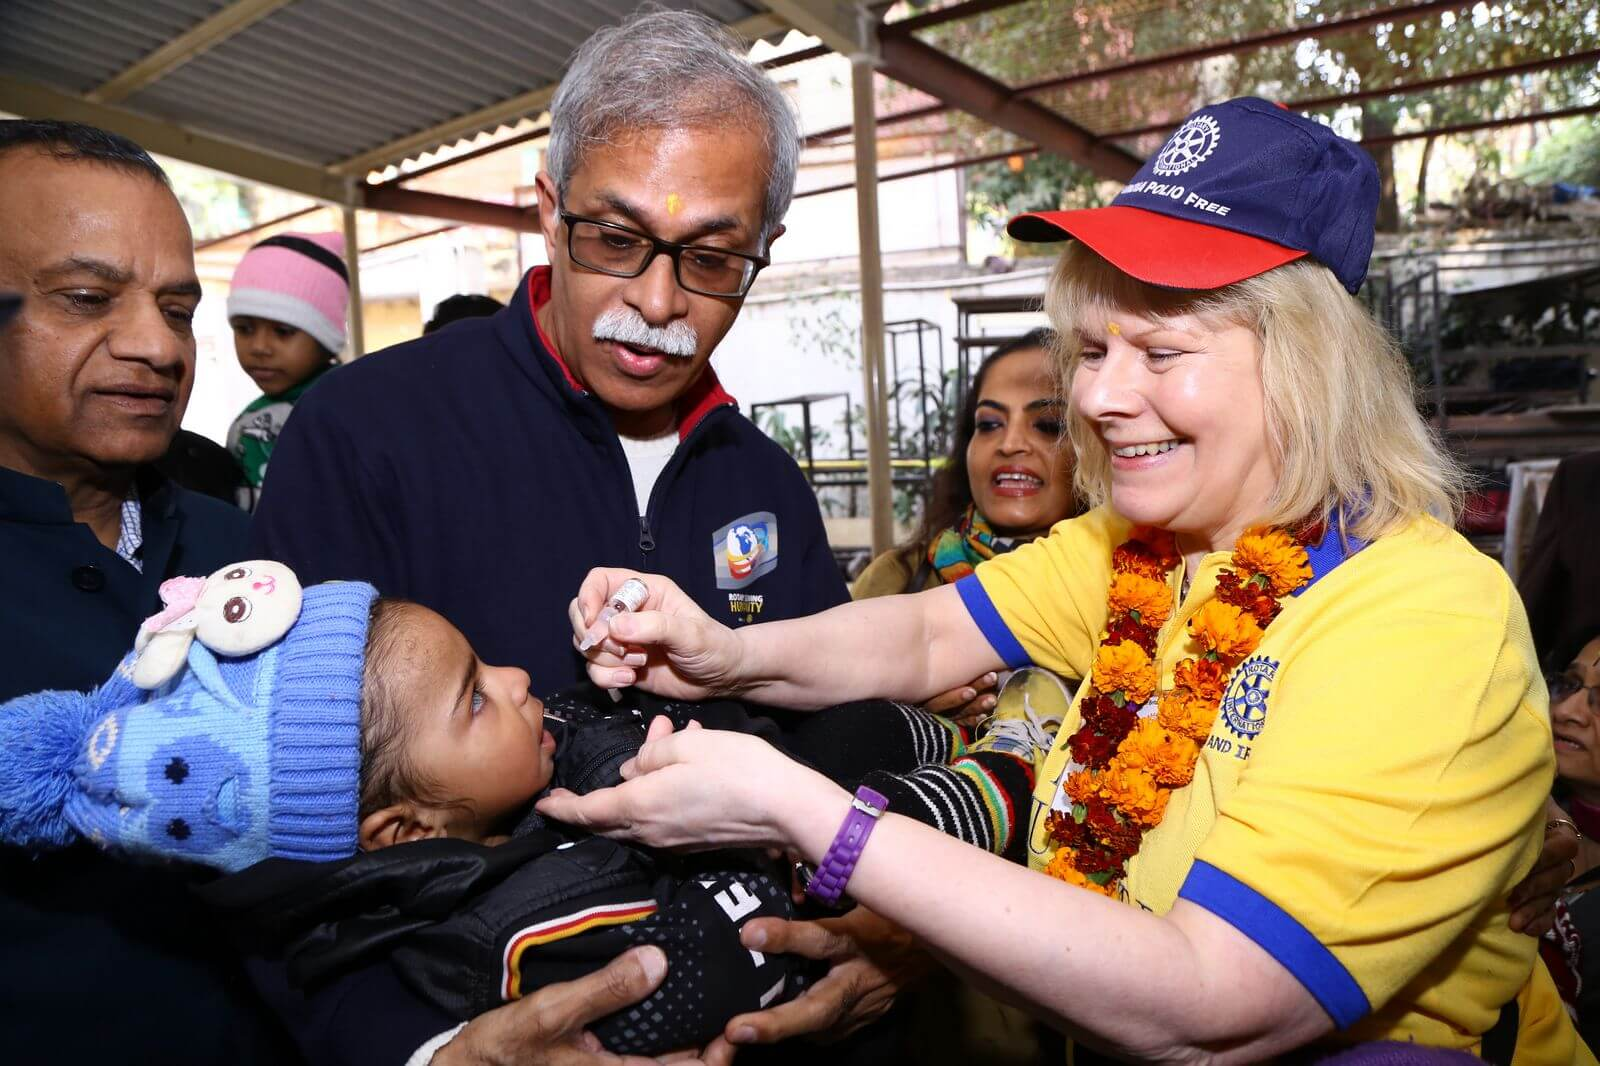 Rotary's Battle Against Polio Given Final Push On International Women's Day